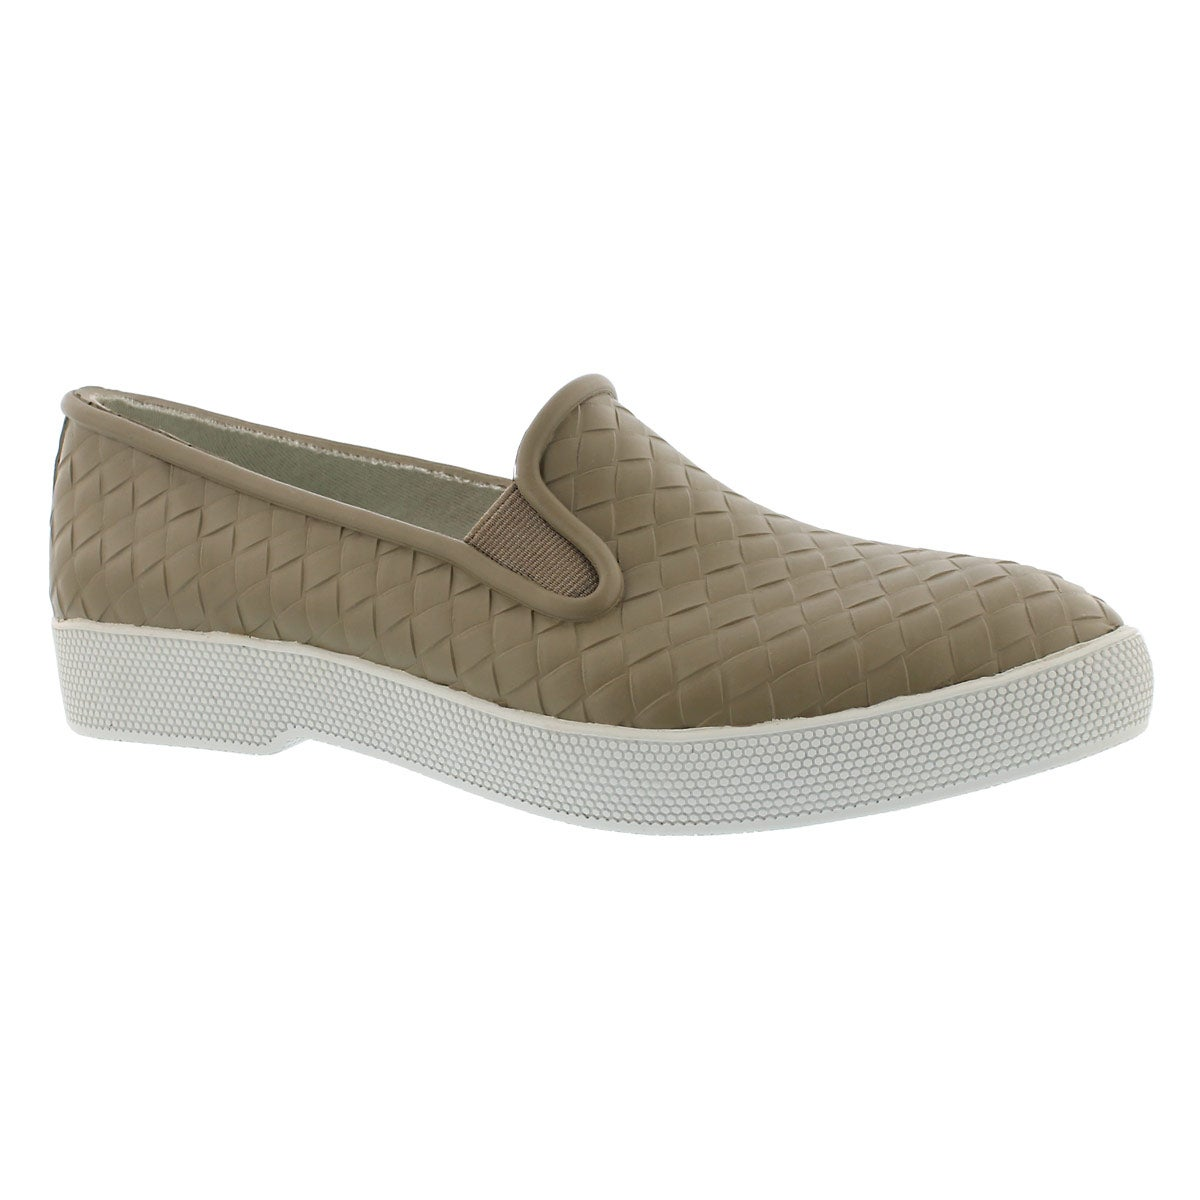 Women's SWOON taupe waterproof slip on shoes